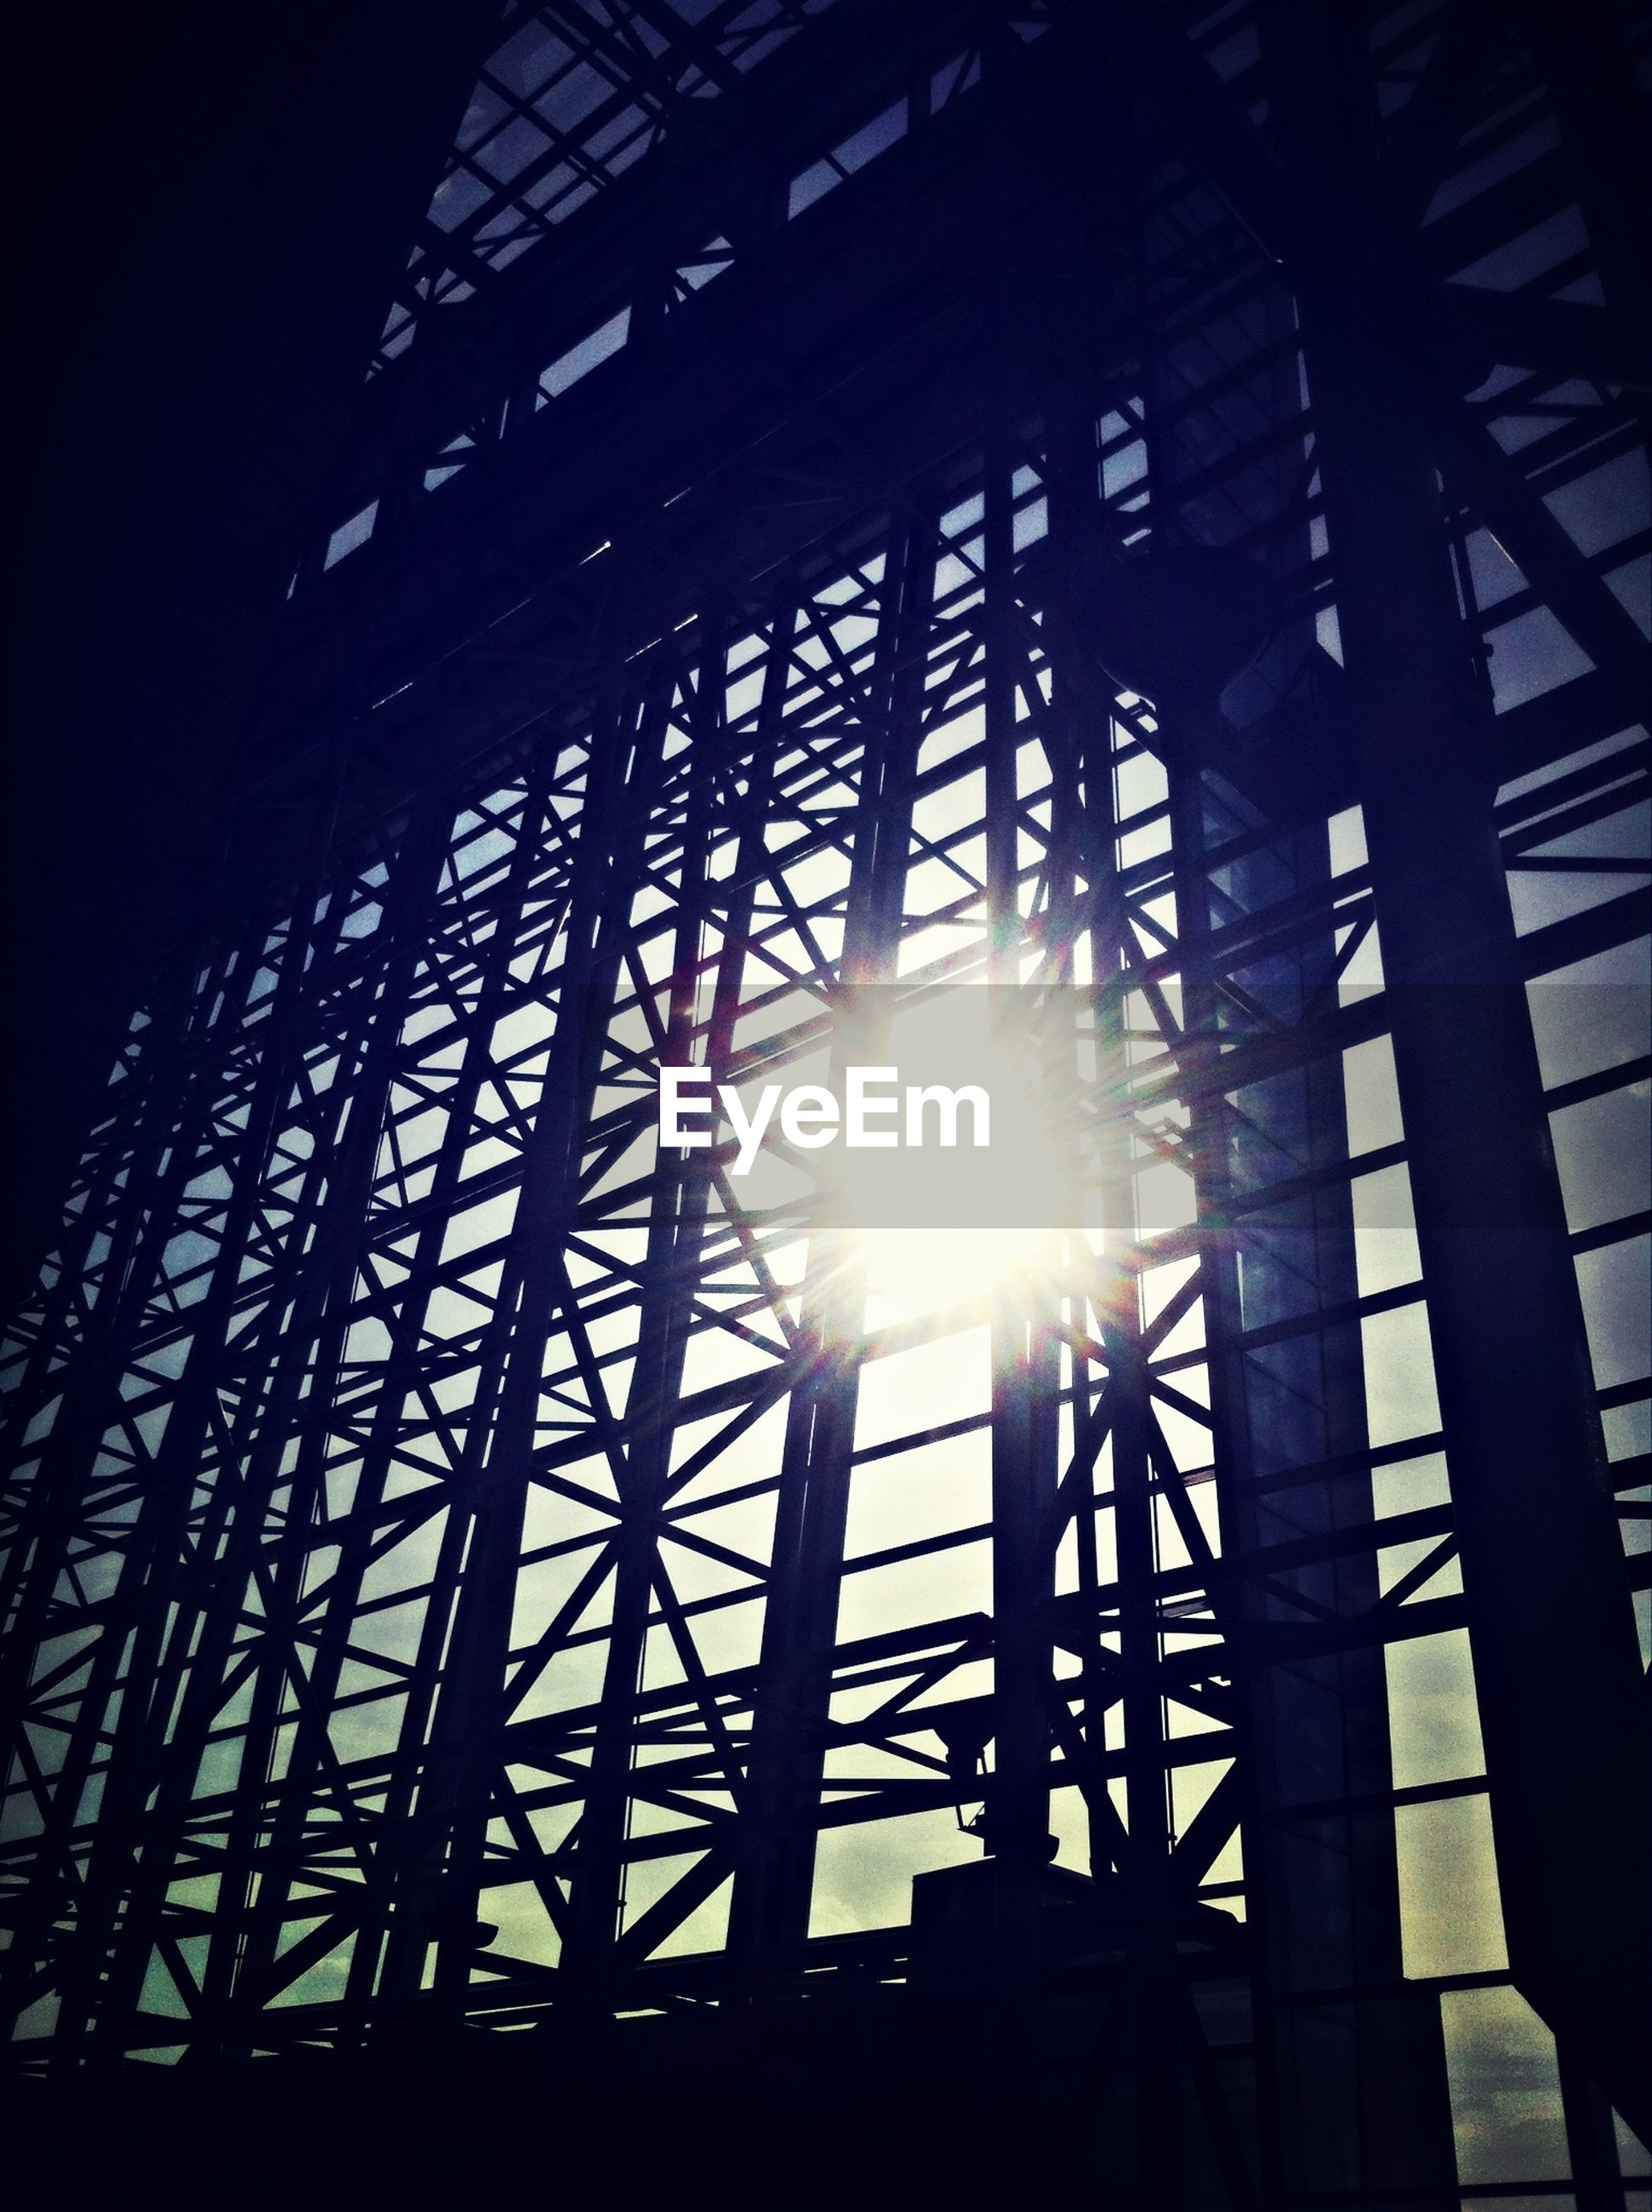 sun, low angle view, sunbeam, sunlight, lens flare, silhouette, built structure, architecture, sunset, sky, metal, back lit, bright, no people, outdoors, pattern, grid, sunny, streaming